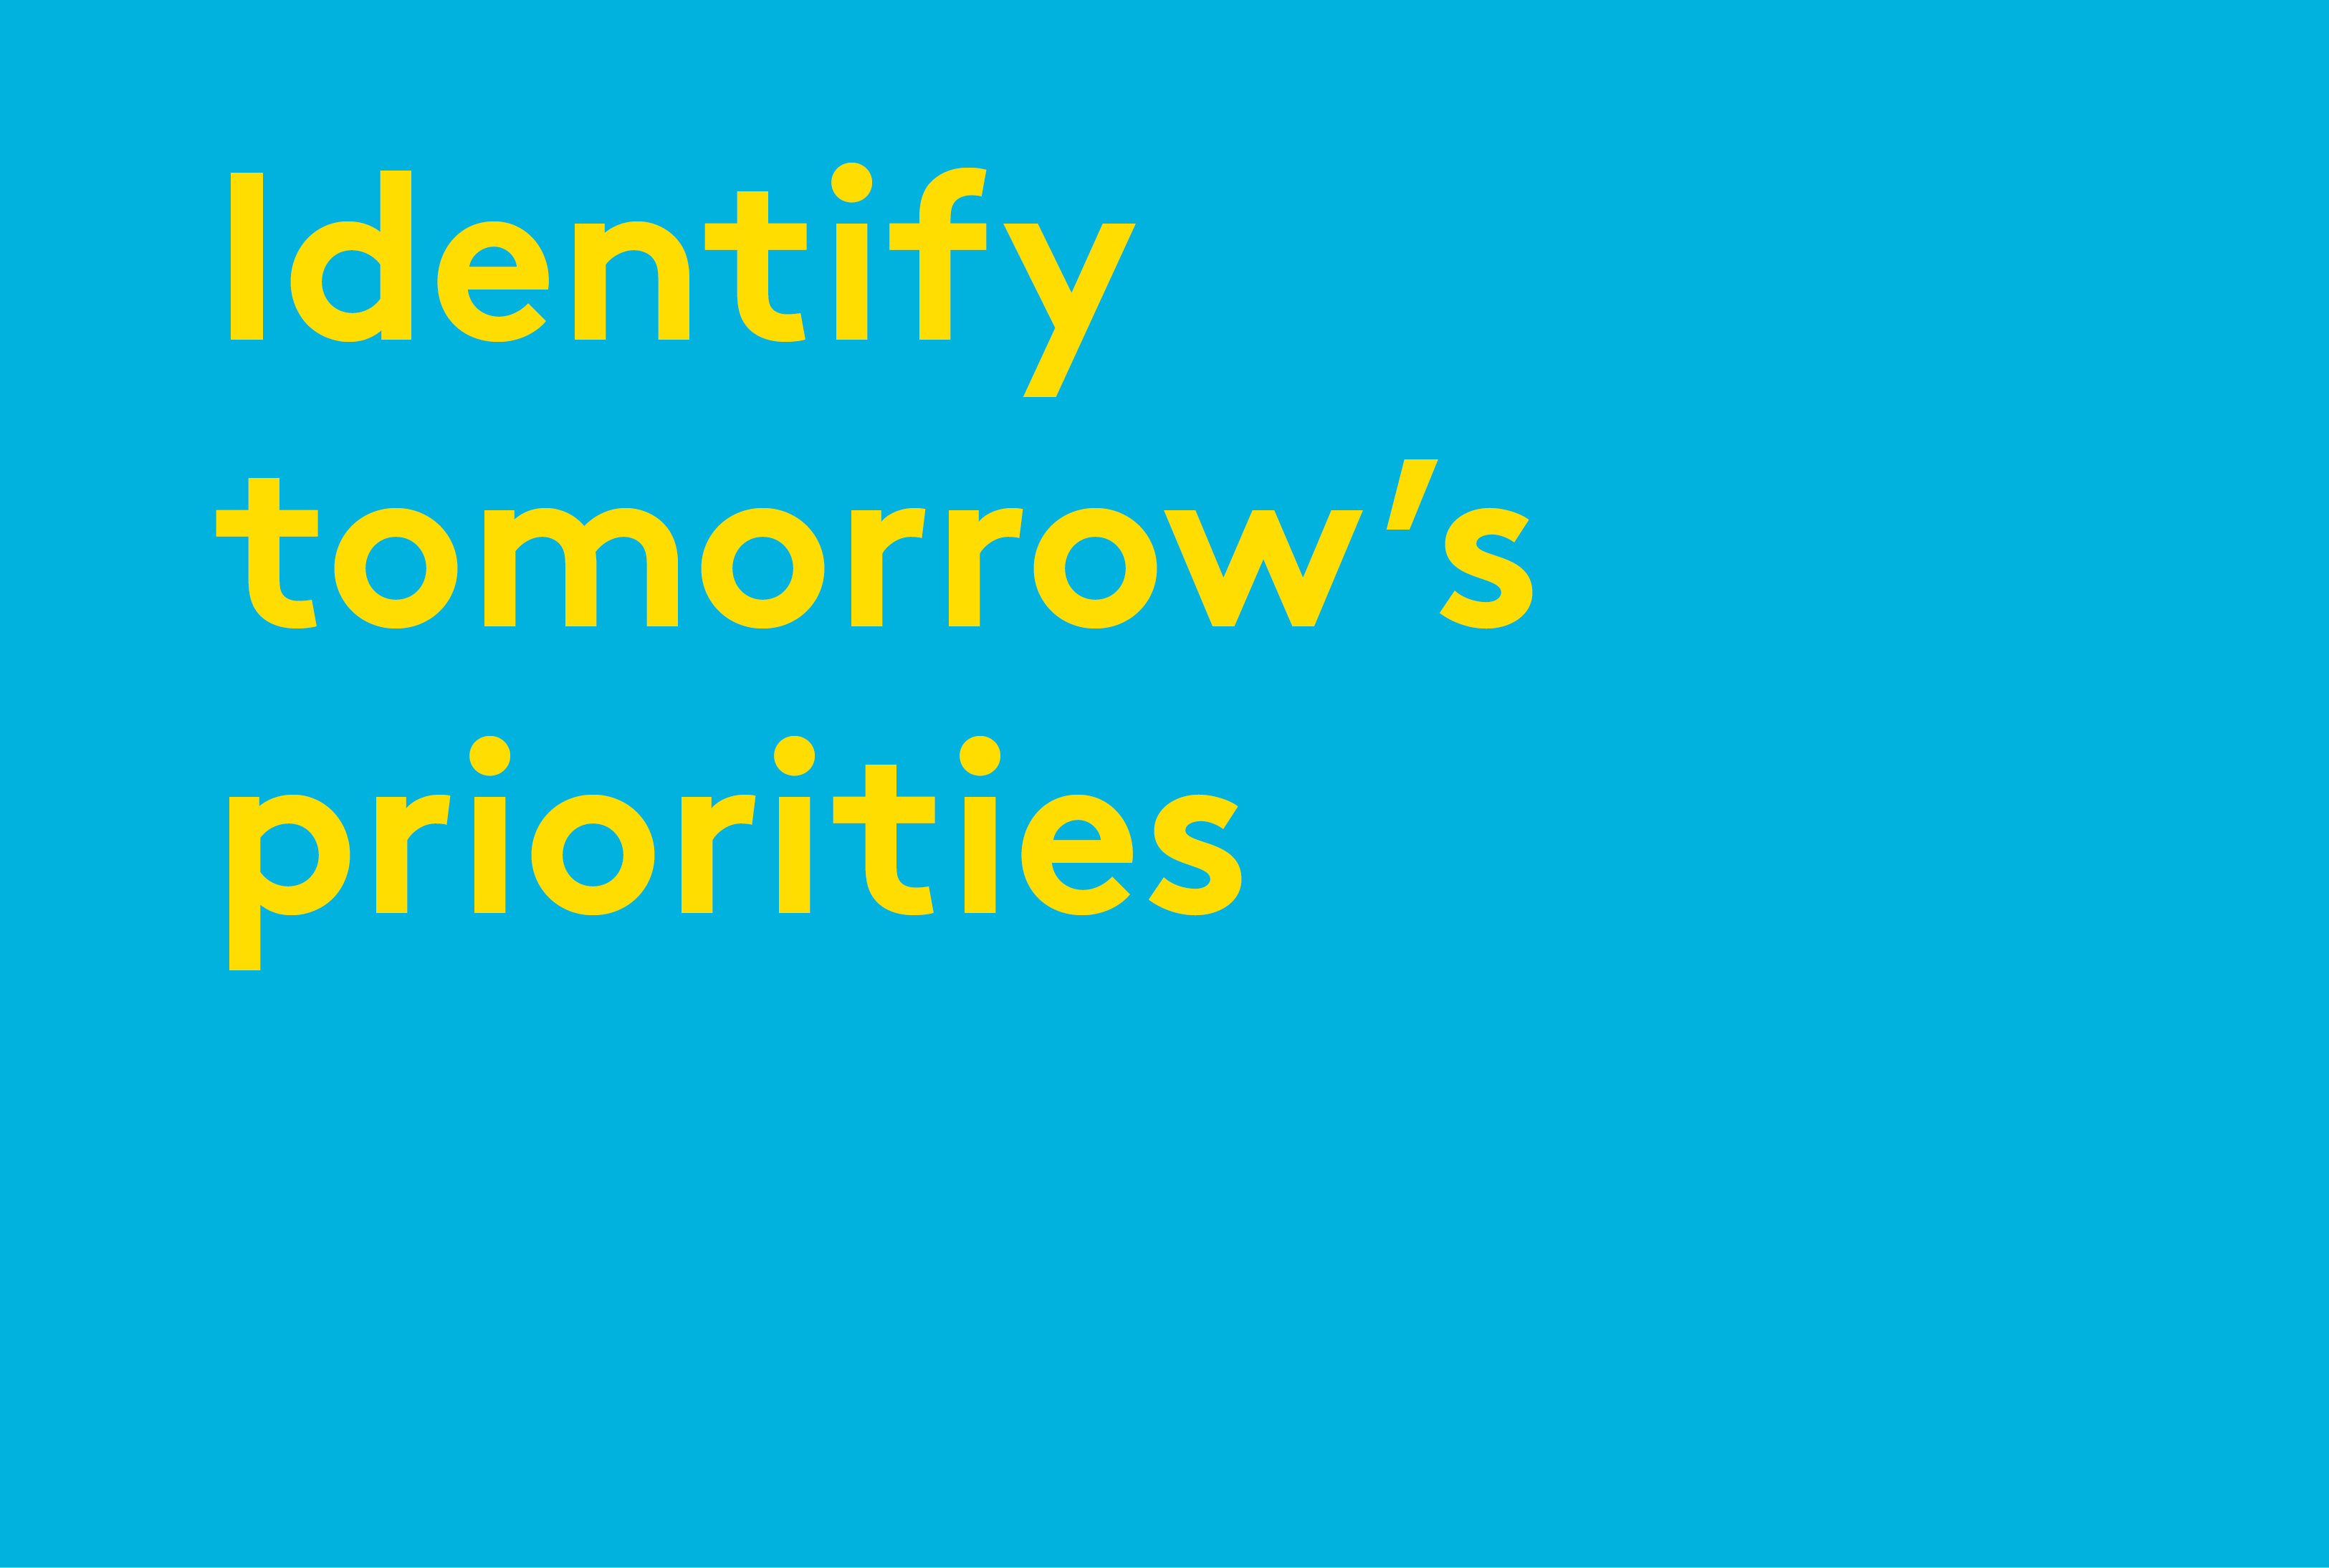 GOS Identify tomorrow's priorities visual